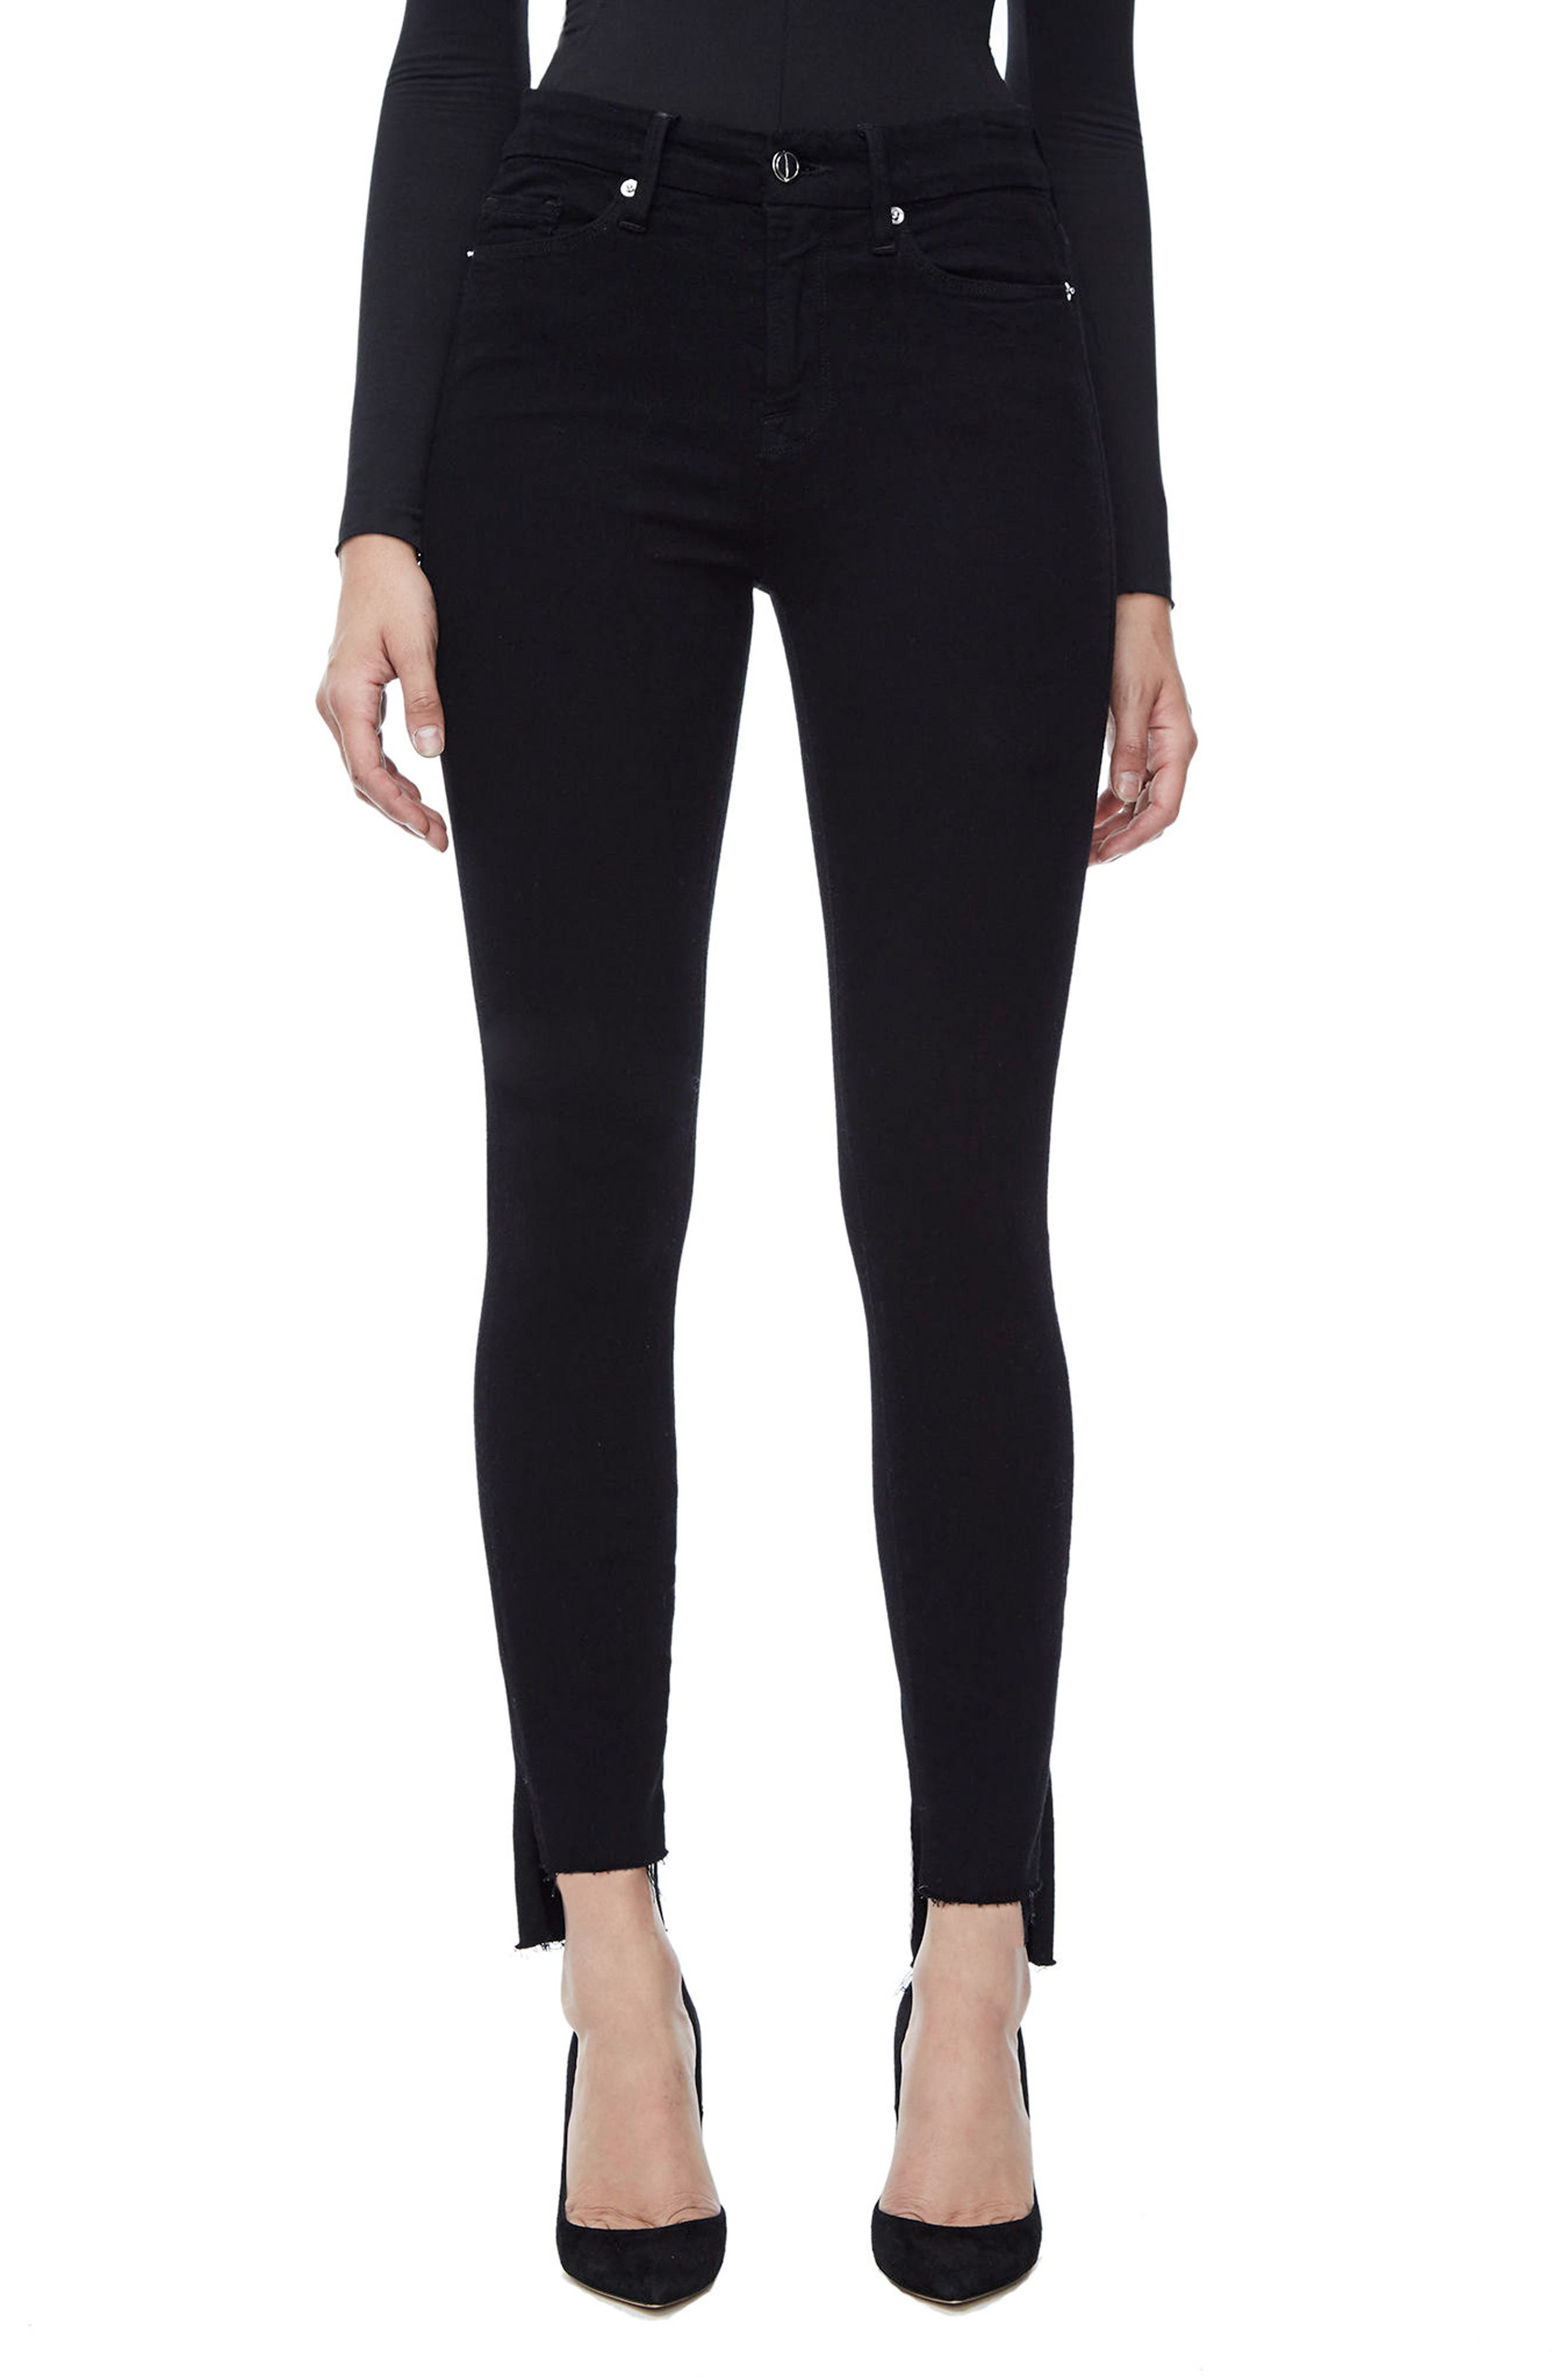 Main Image - Good American Good Legs High Waist Skinny Jeans (Black 001) (Extended Sizes)